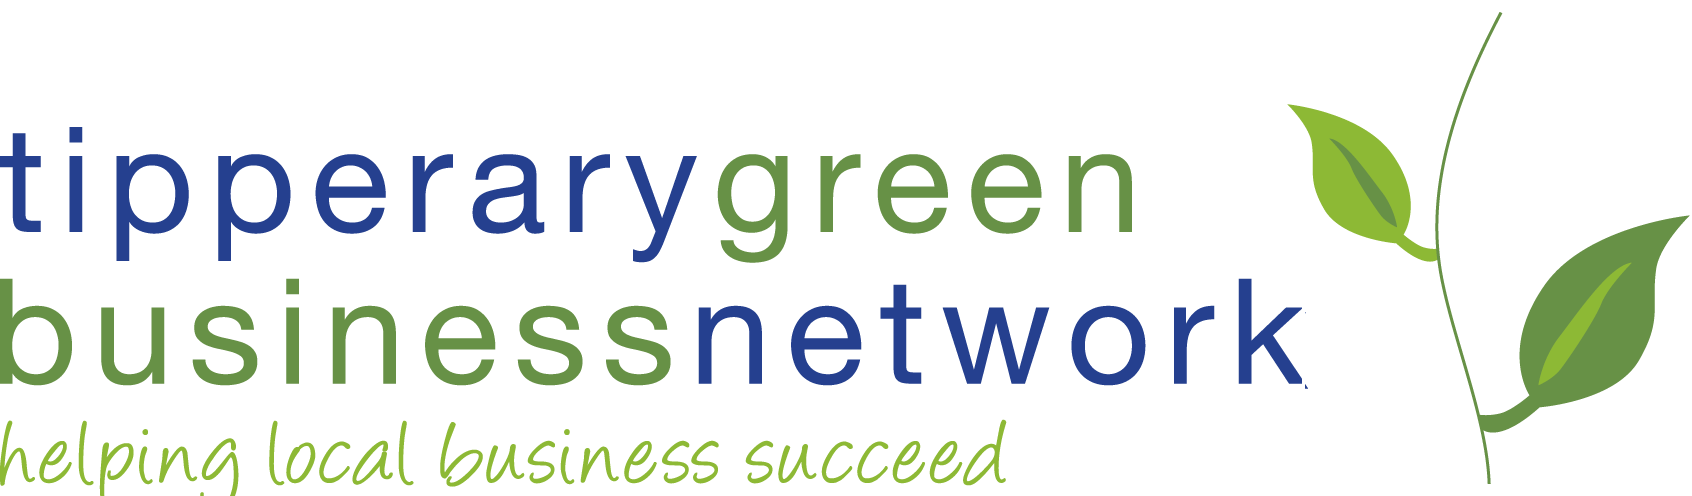 Tipperary Green Business Network